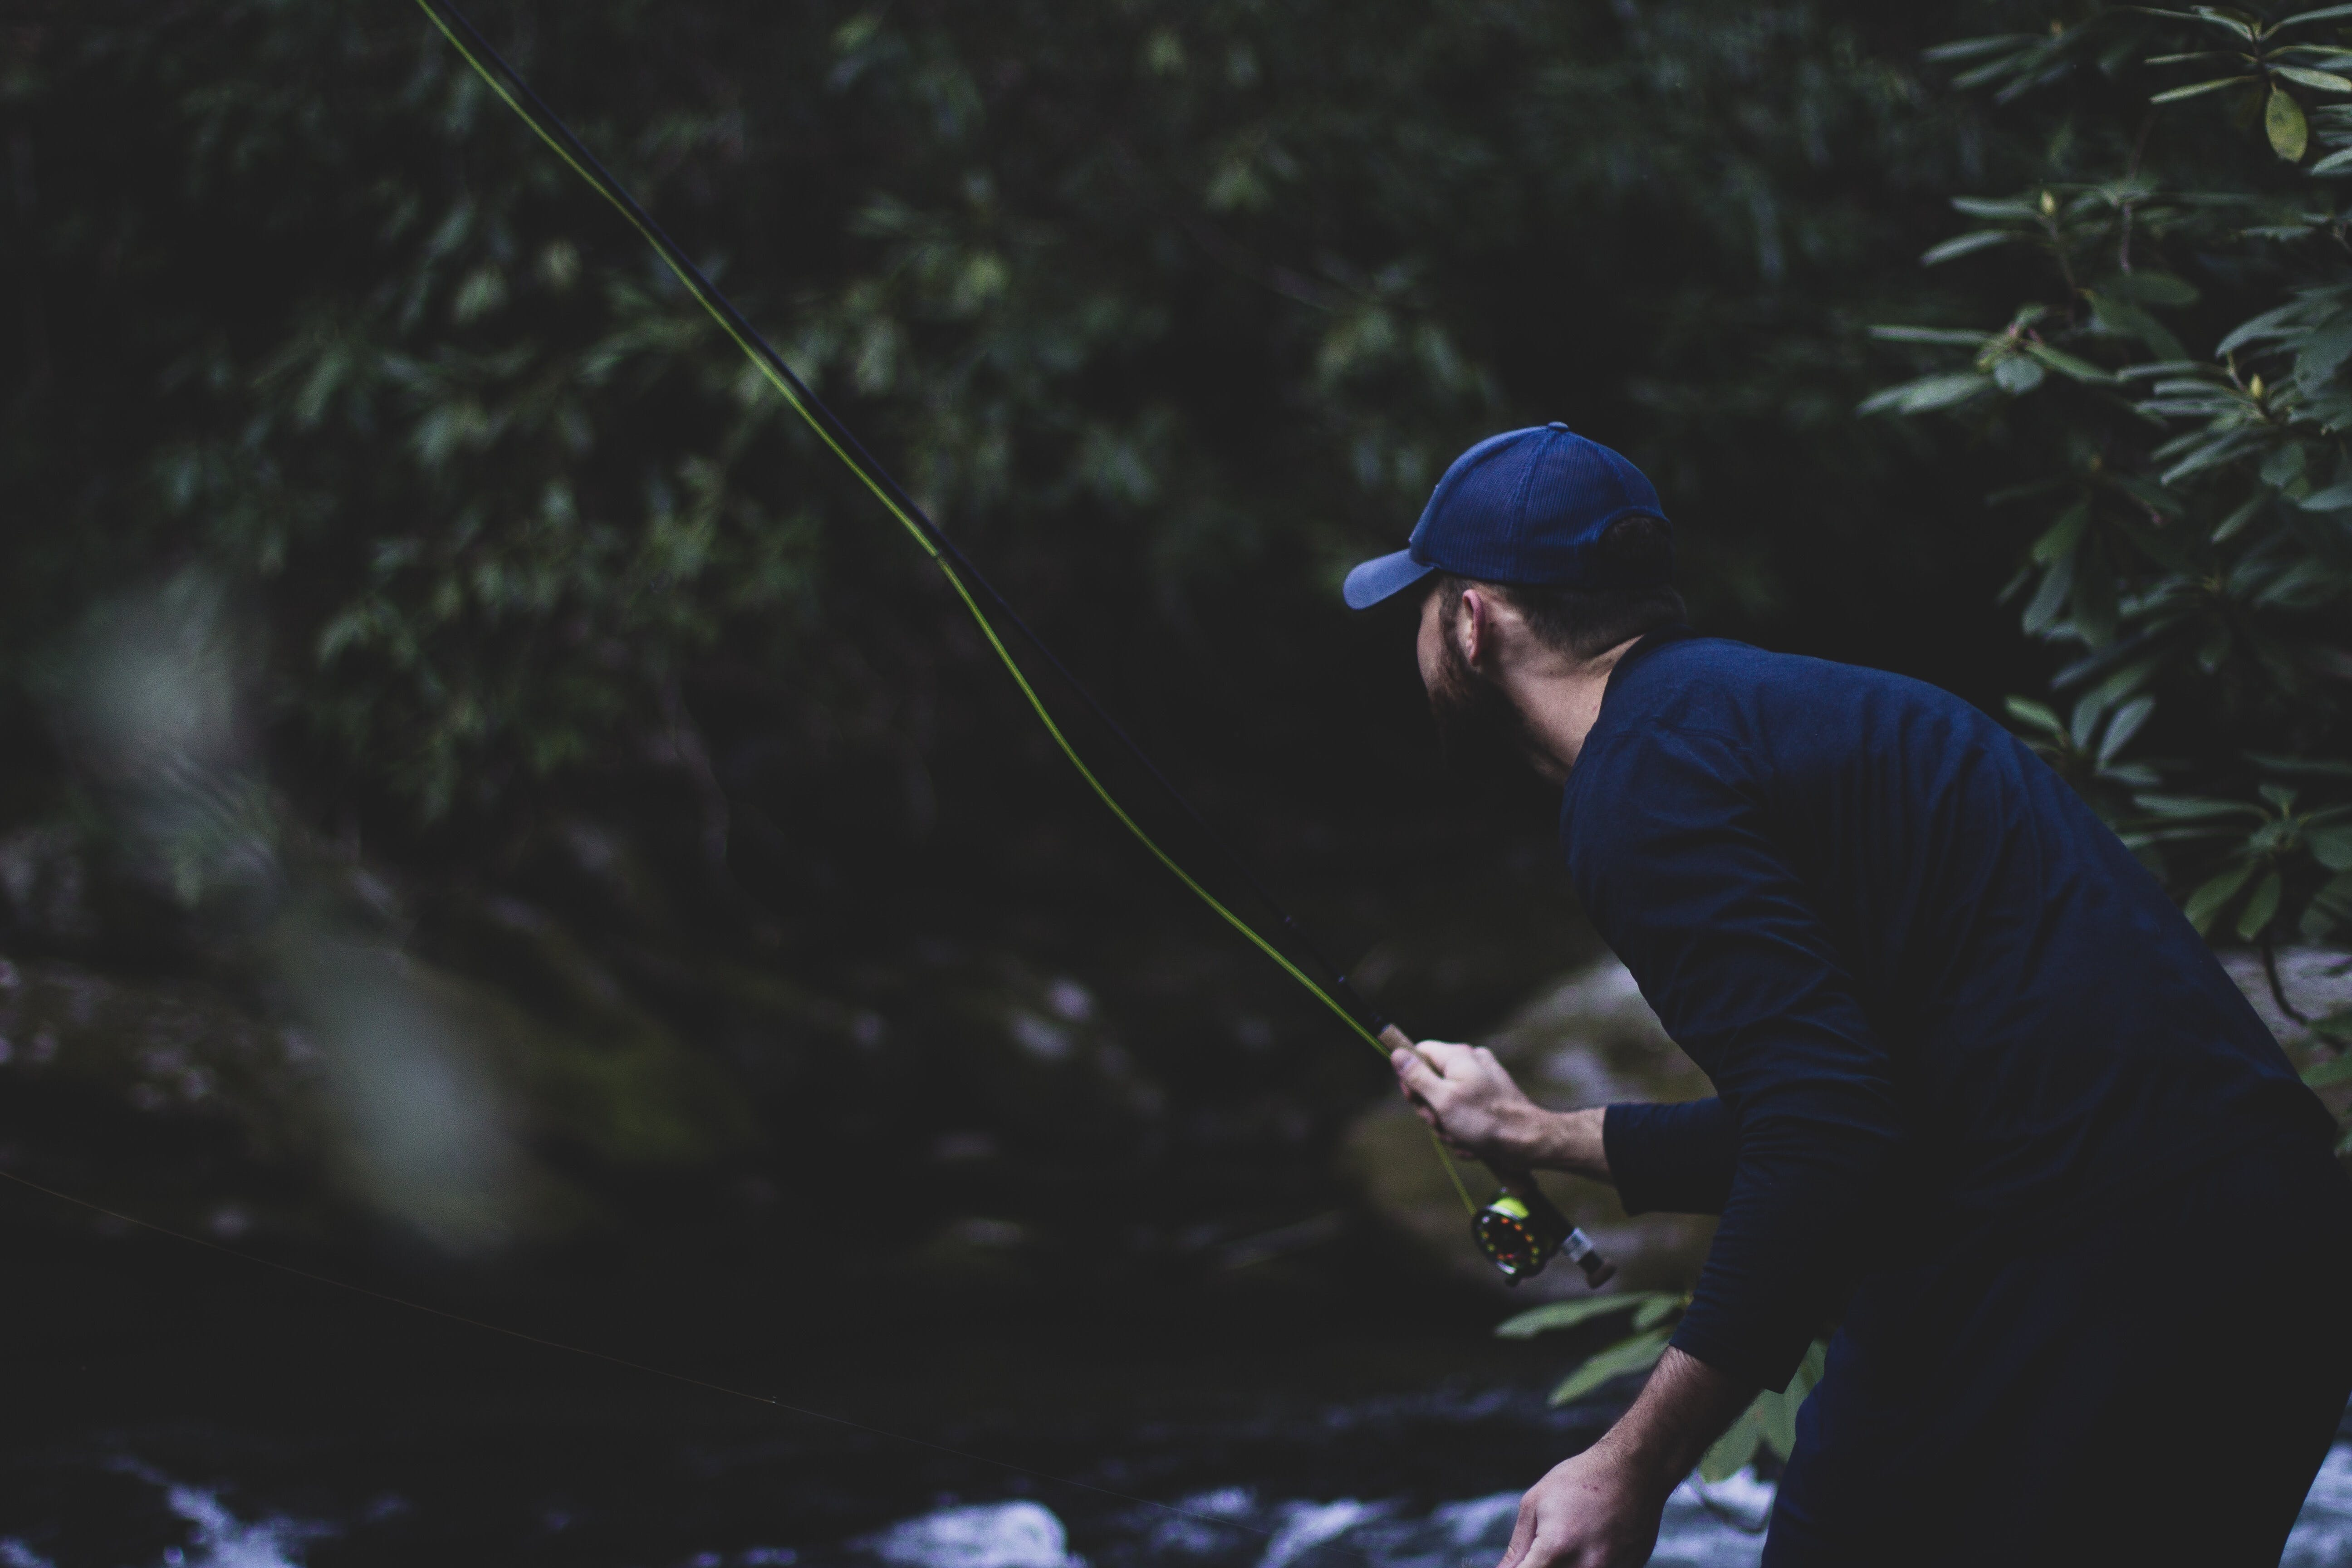 Man fly fishing on a river